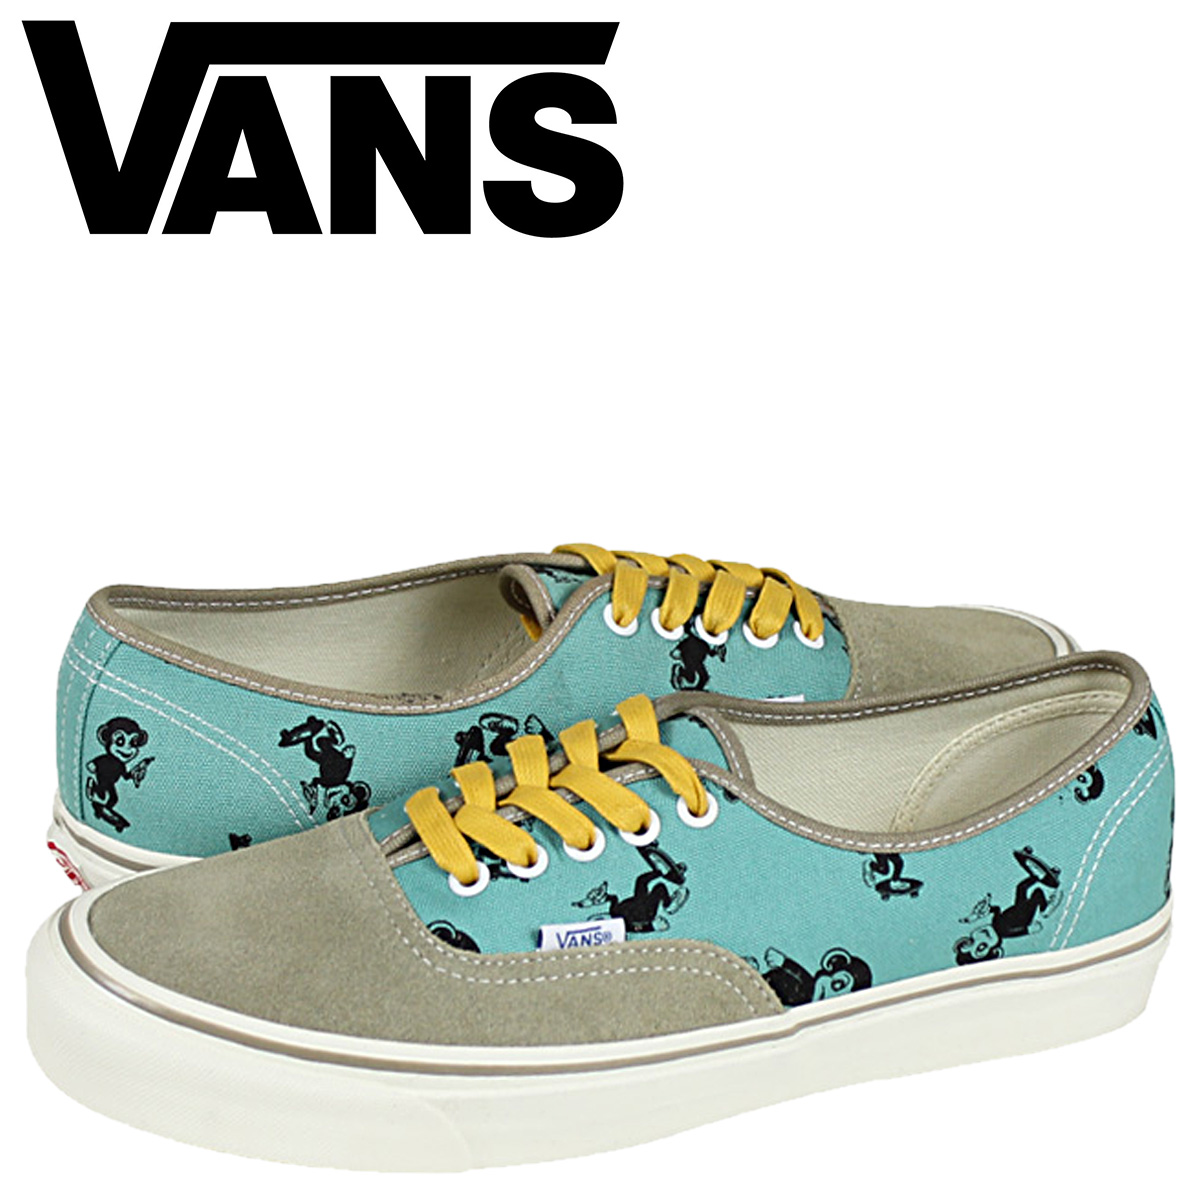 ALLSPORTS  Vans AUTHENTIC LX SK8 MONKEY d2dd808a9e24